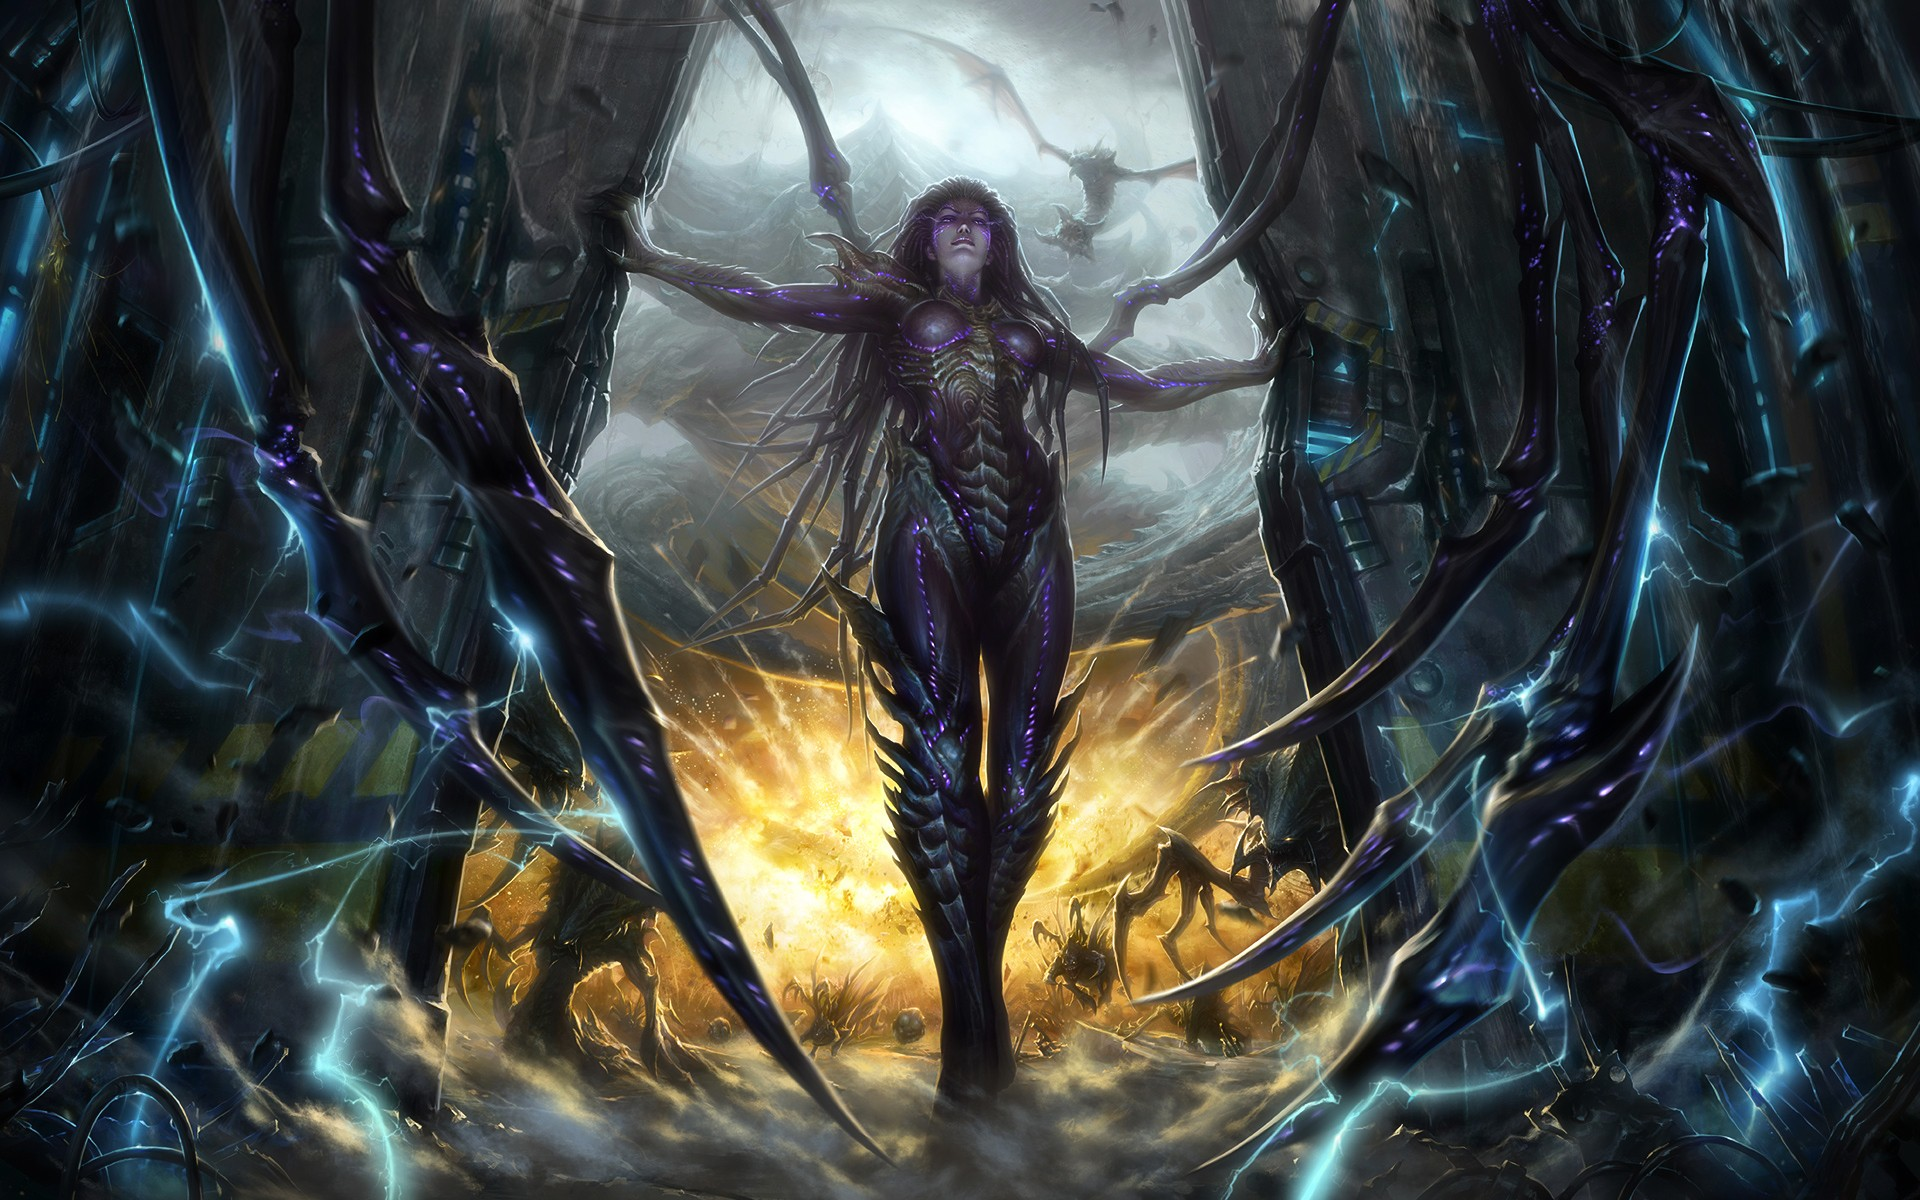 Entertainment StarCraft II blizzard game Kerrigan Wallpapers 1920x1200